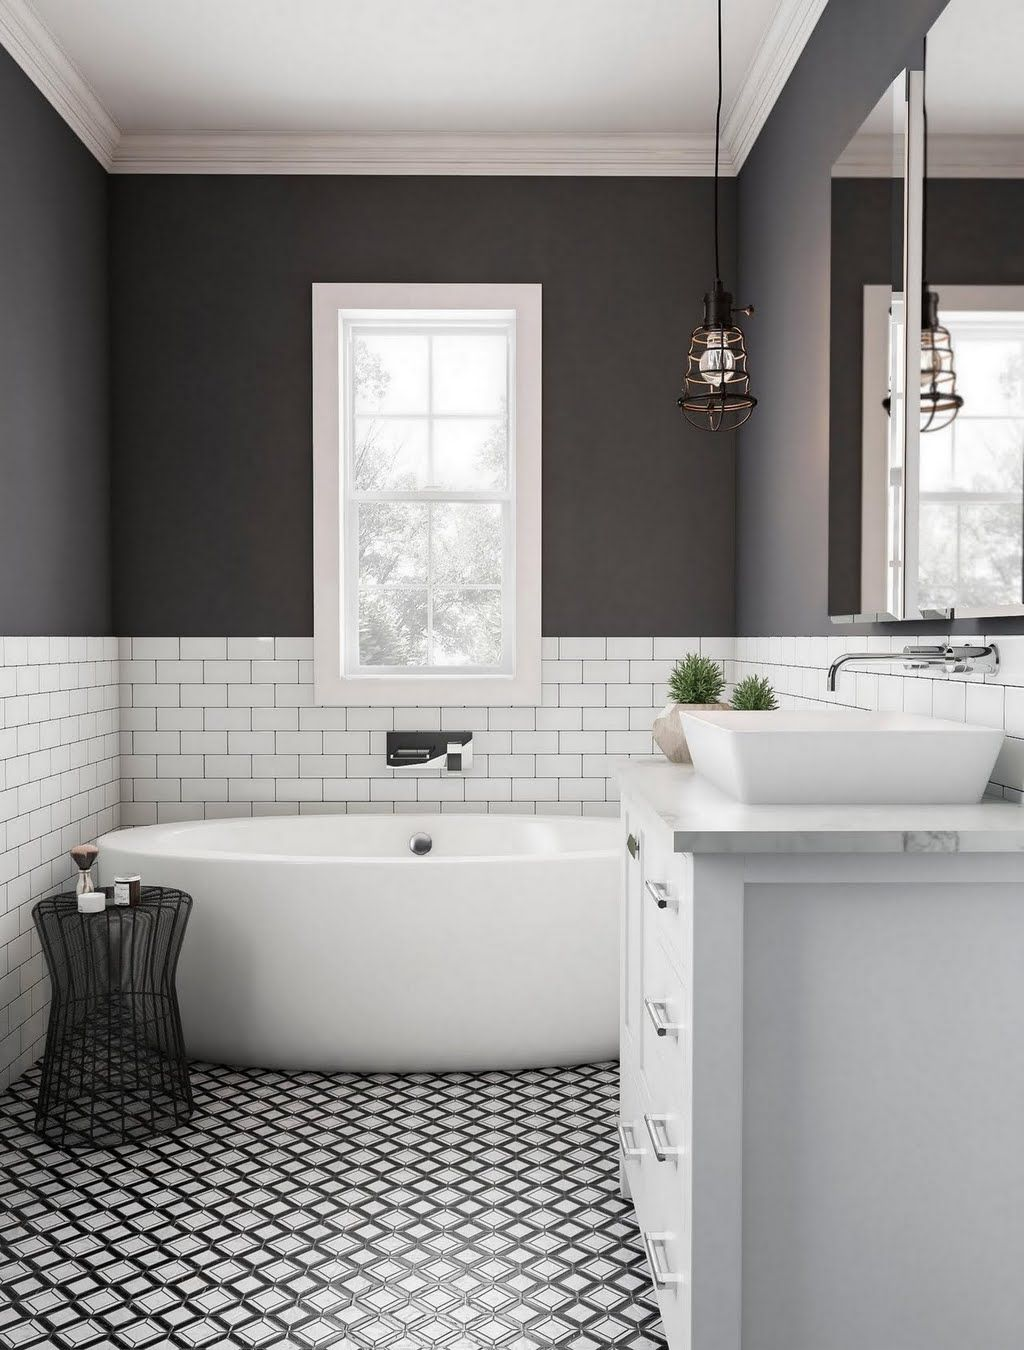 shop our bathroom department to customize your modern dark bathroom rh pinterest com